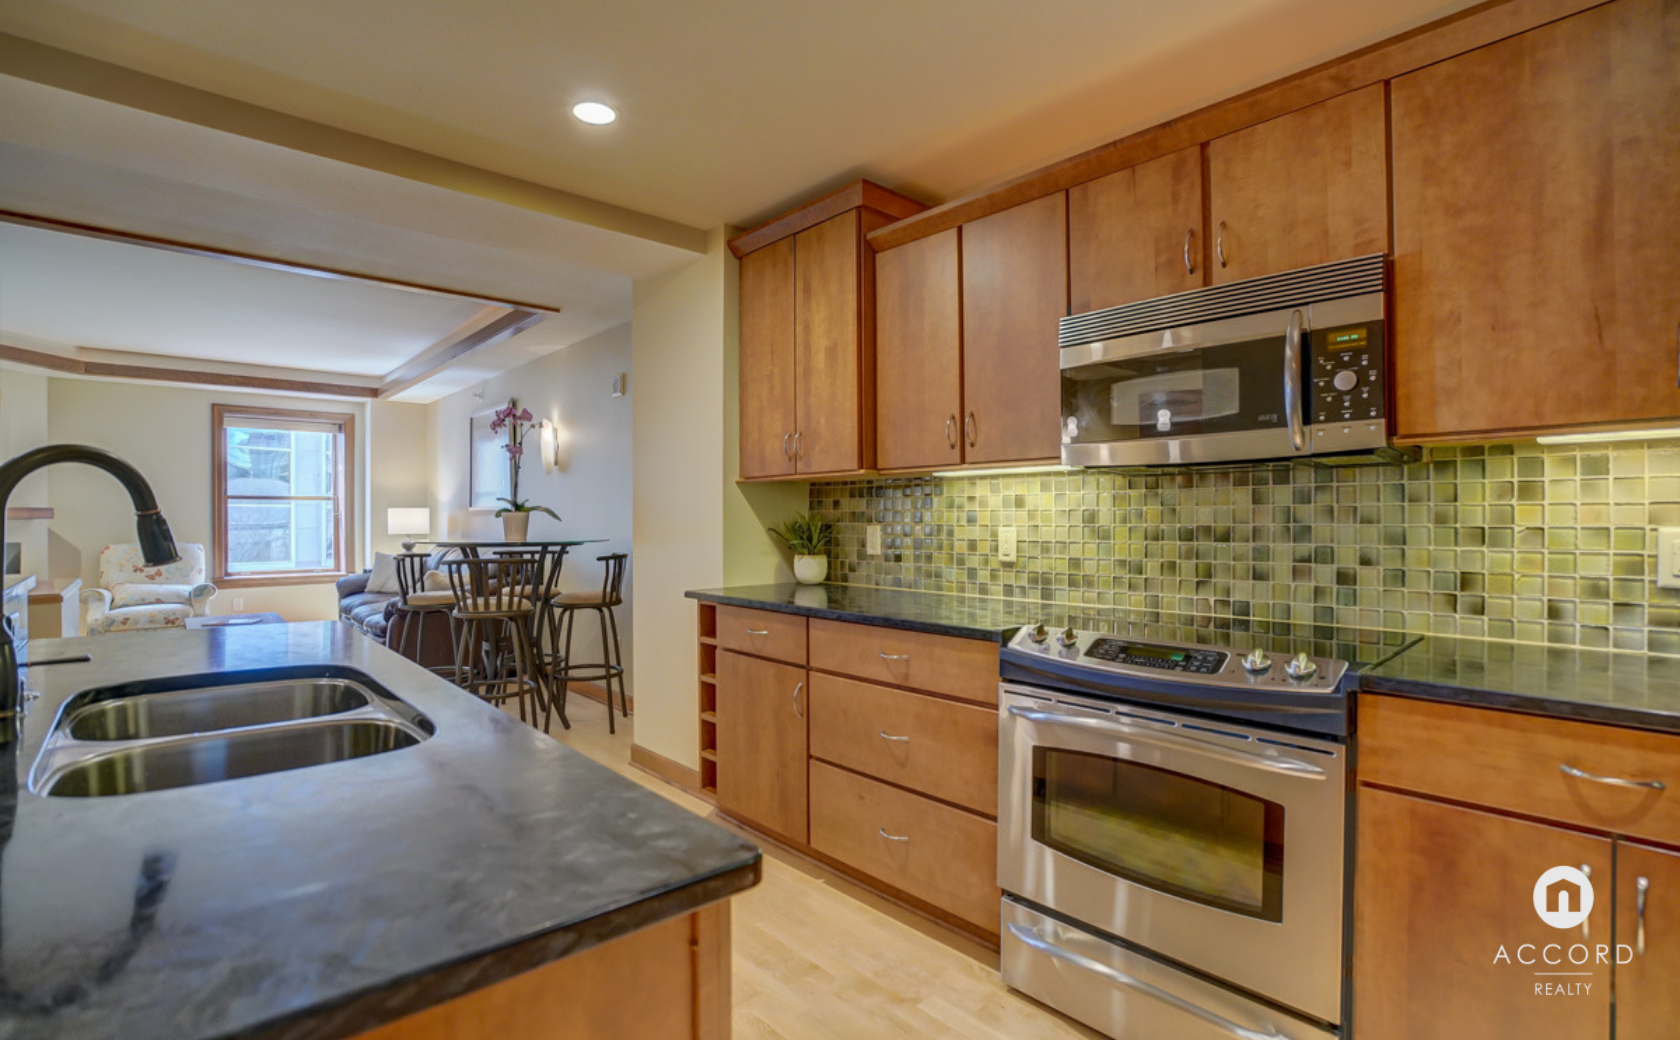 123 W Washington Ave #303 Madison, WI 53703 - Kitchen.png